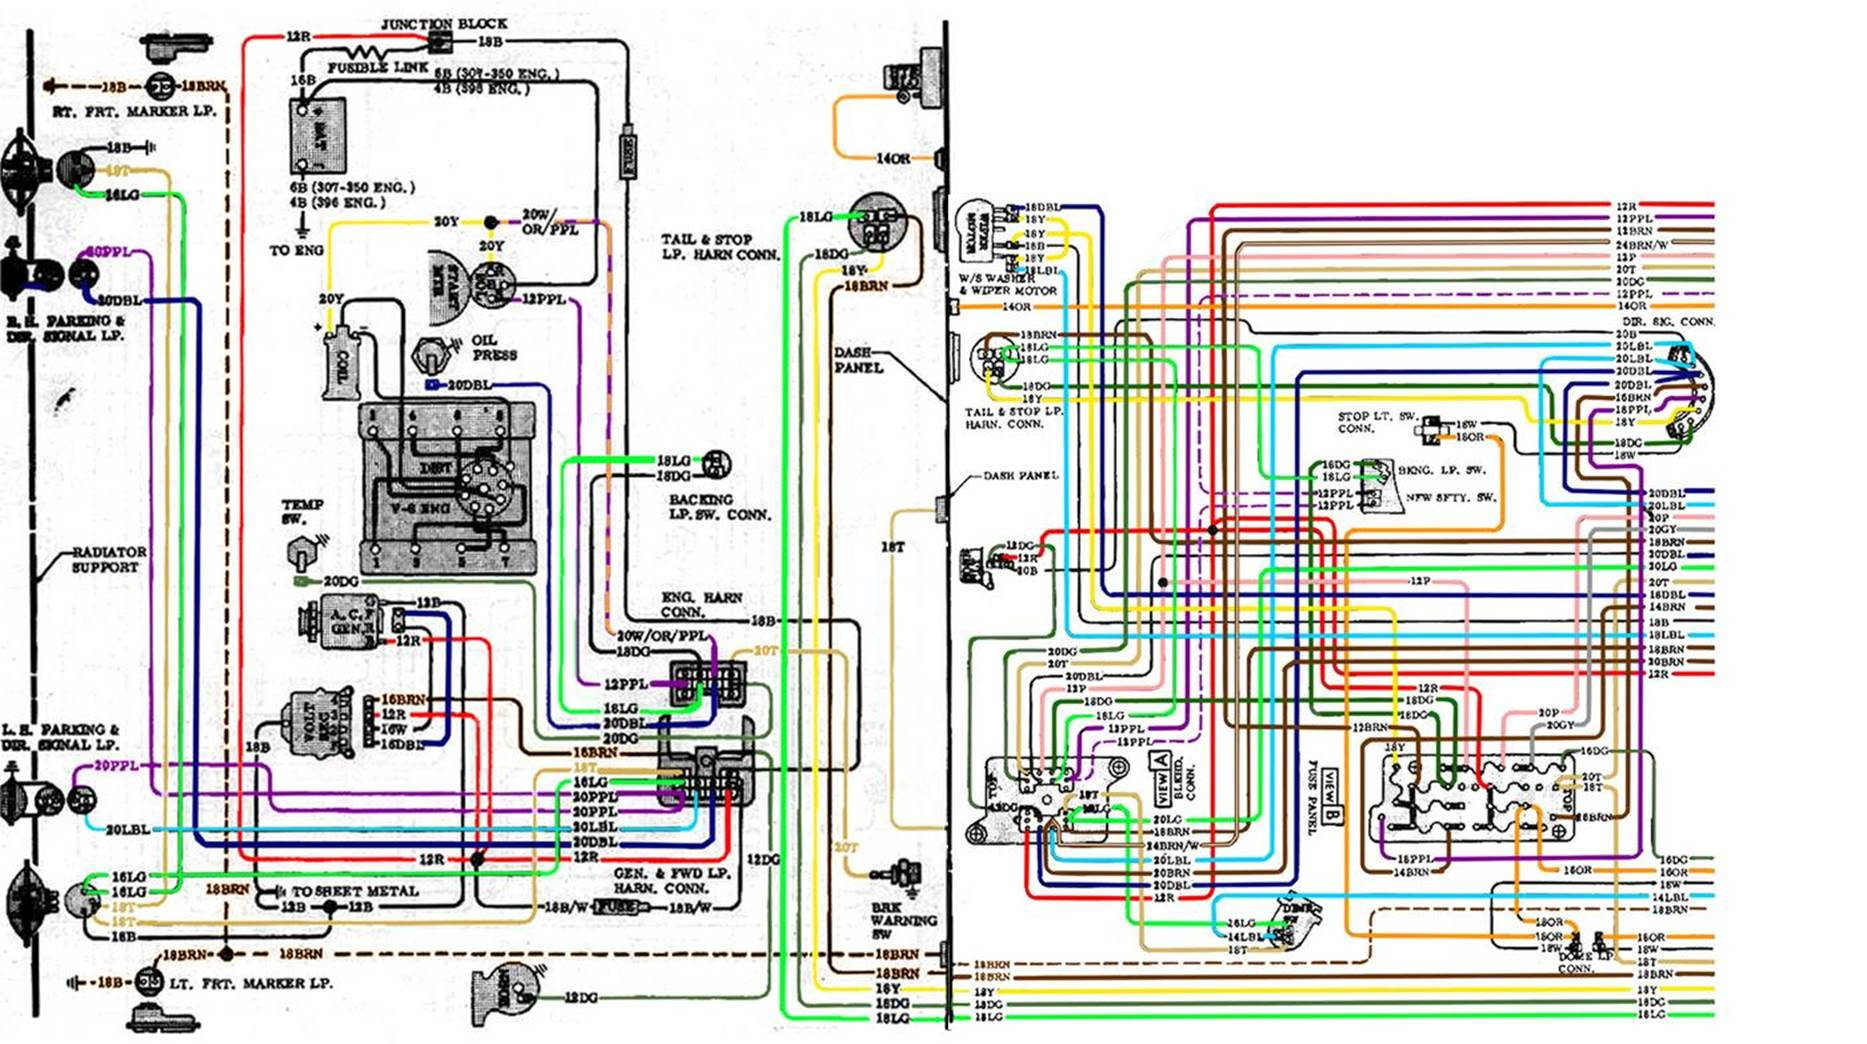 image002 67 72 chevy wiring diagram chevy truck wiring harness at aneh.co